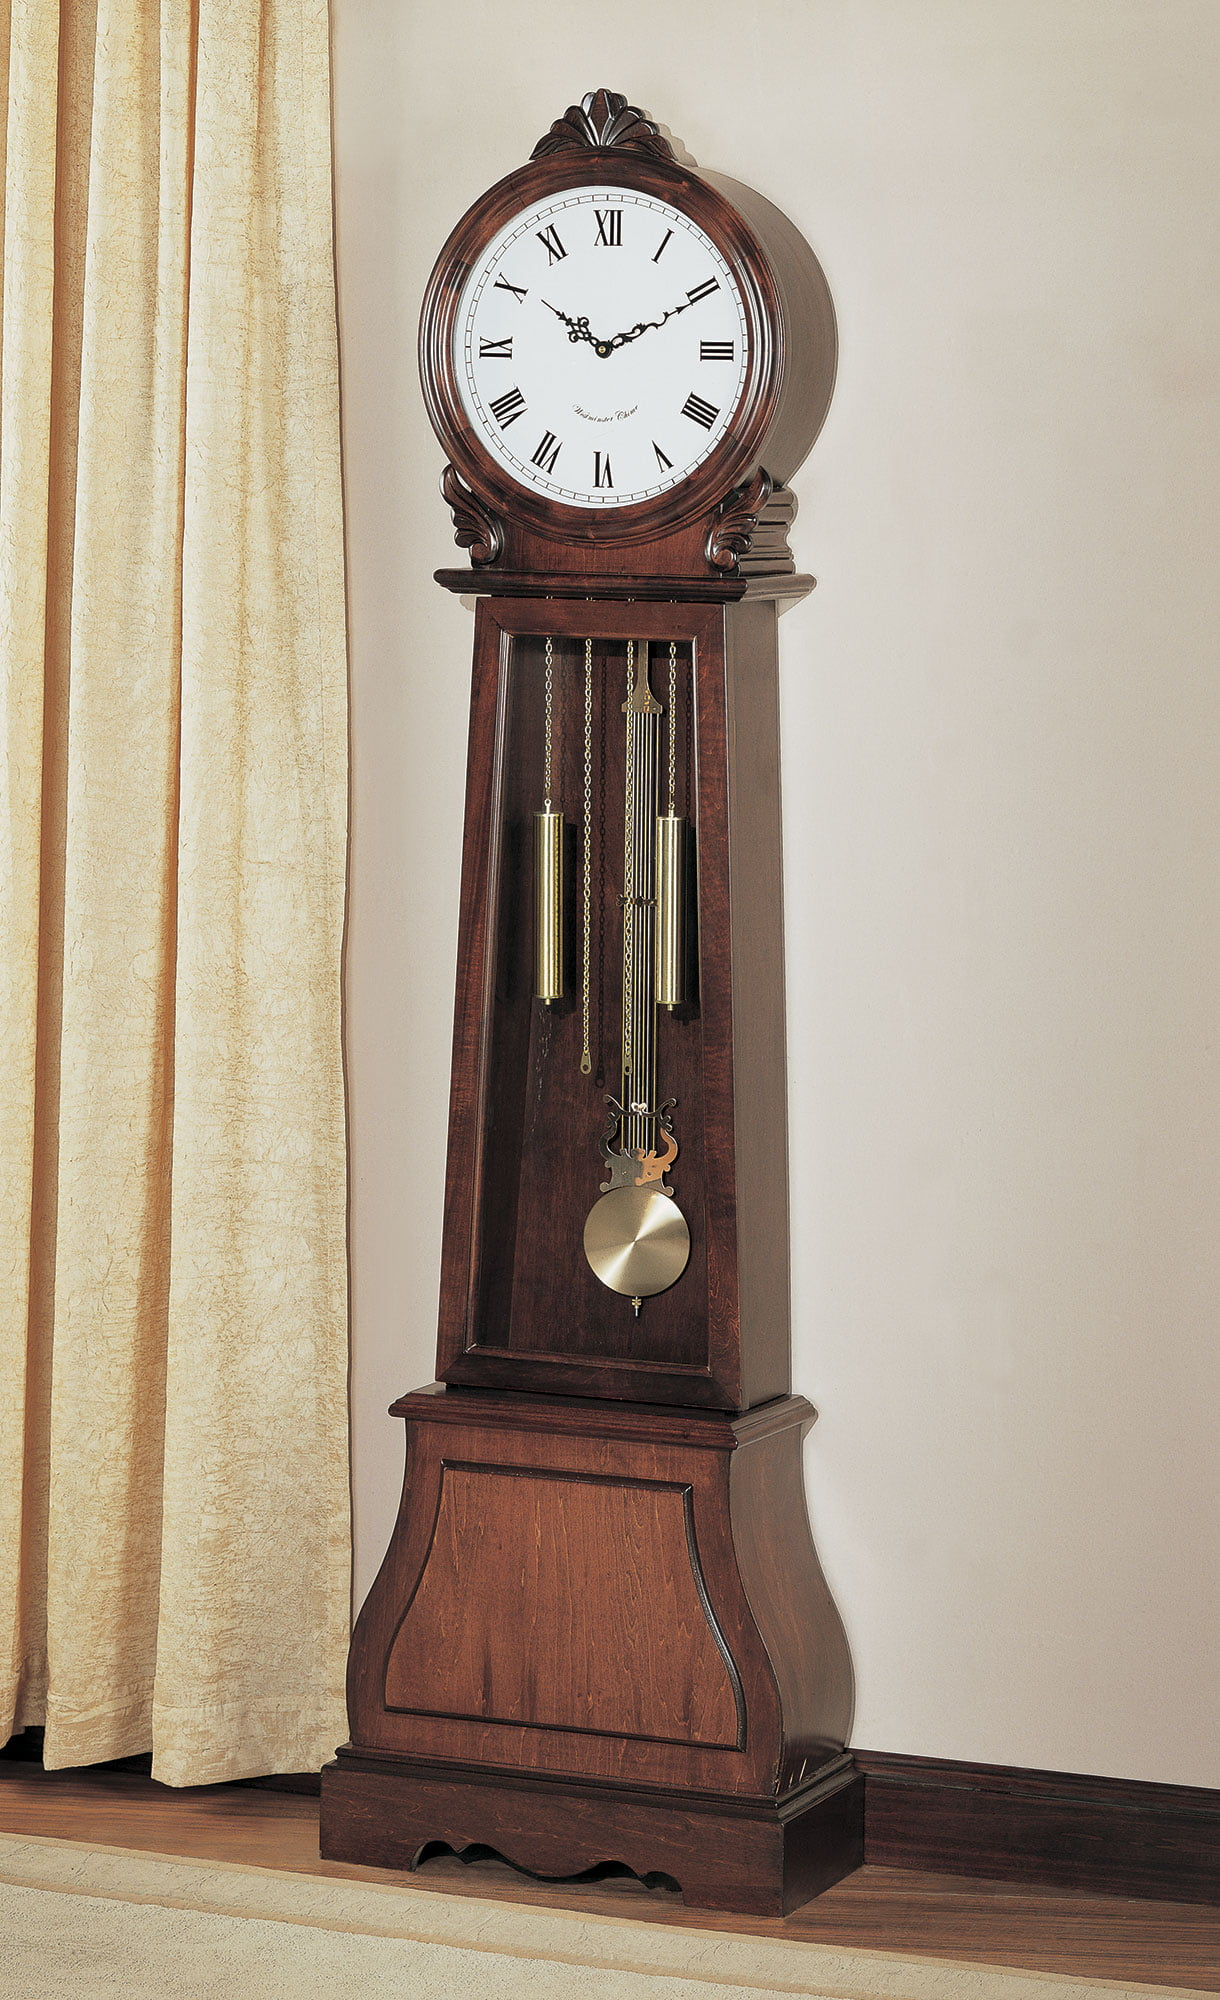 1PerfectChoice Traditional Vintage Grandfather Clock Floor Westminster Pendulum Chimes Brown by 1PerfectChoice